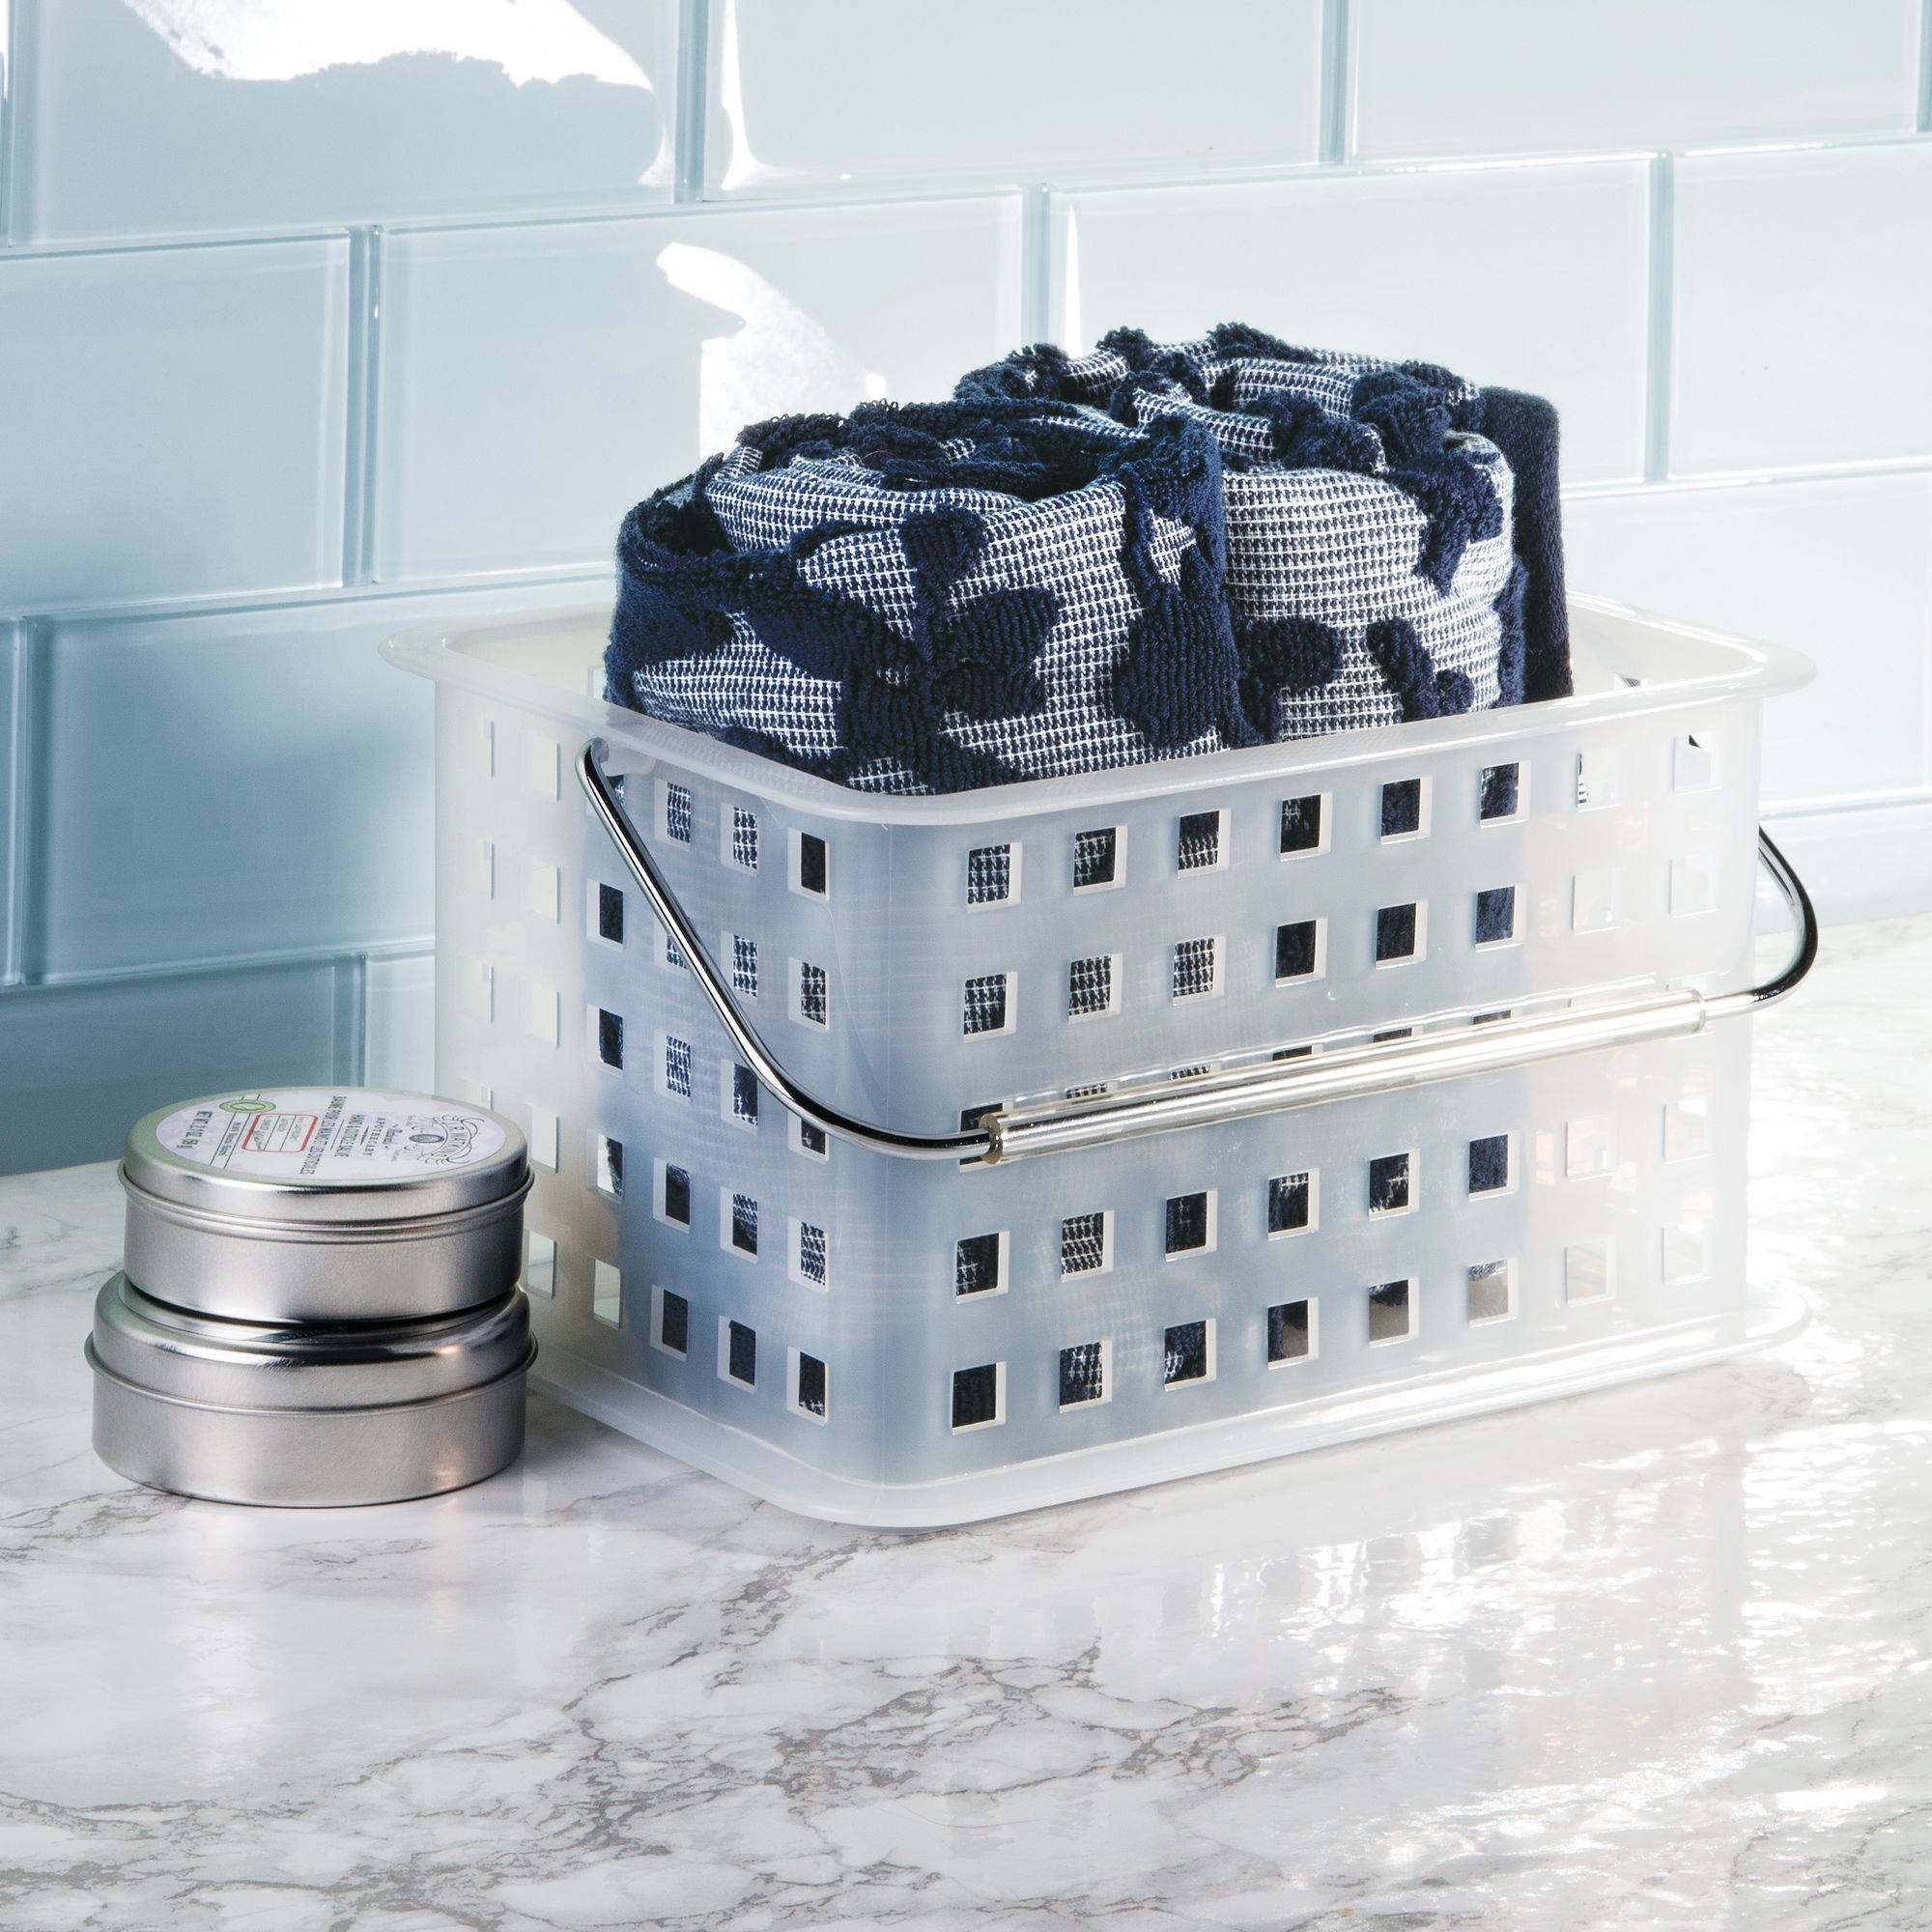 Mainstays Bathroom Shower Caddy Tote Organizer Basket, Available in Multiple Colors by INTERDESIGN